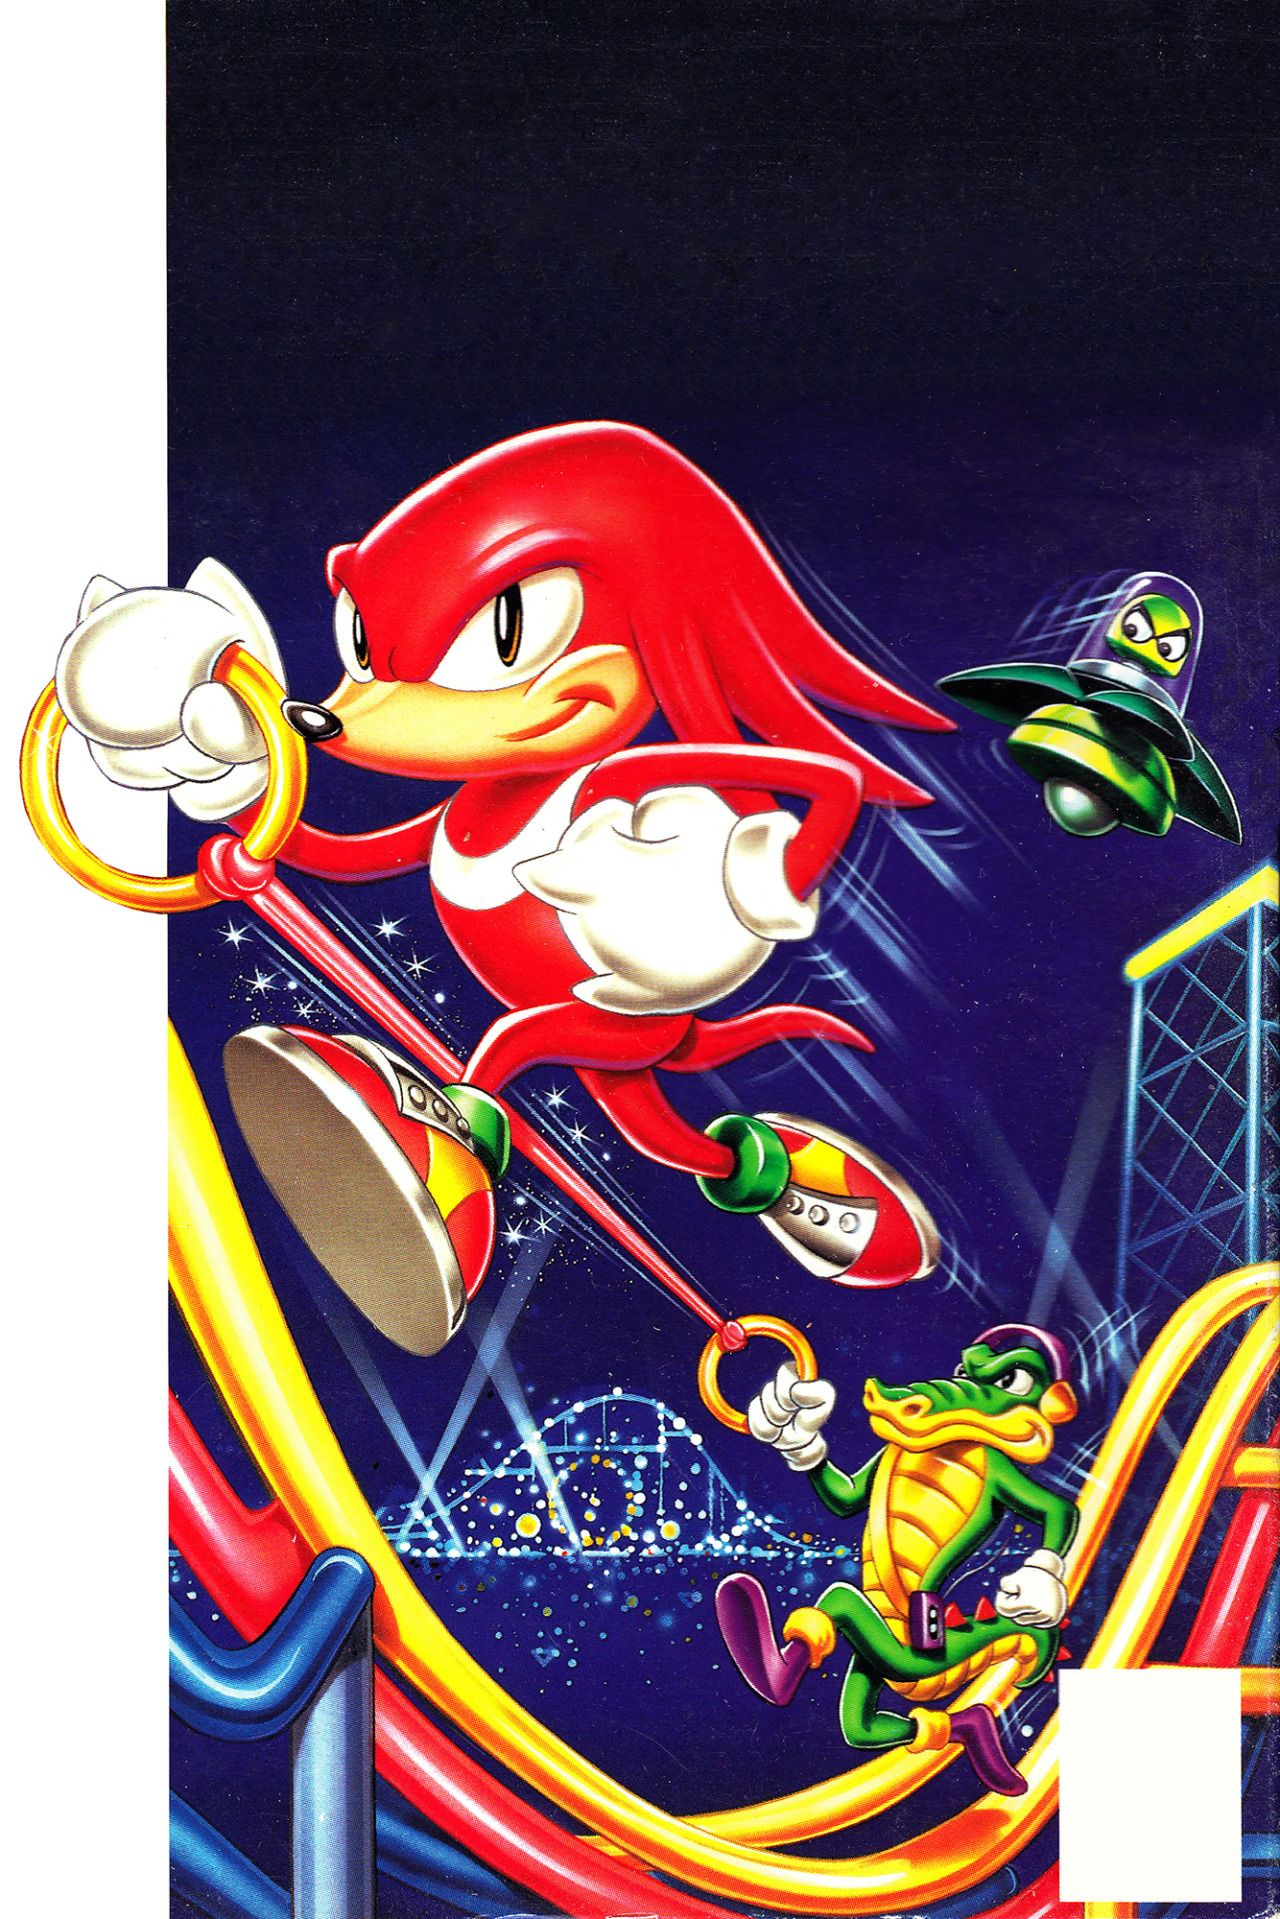 0defe7ce8e9 The Video Game Art Archive - Knuckles Chaotix! This weird 32x spinoff of  the.